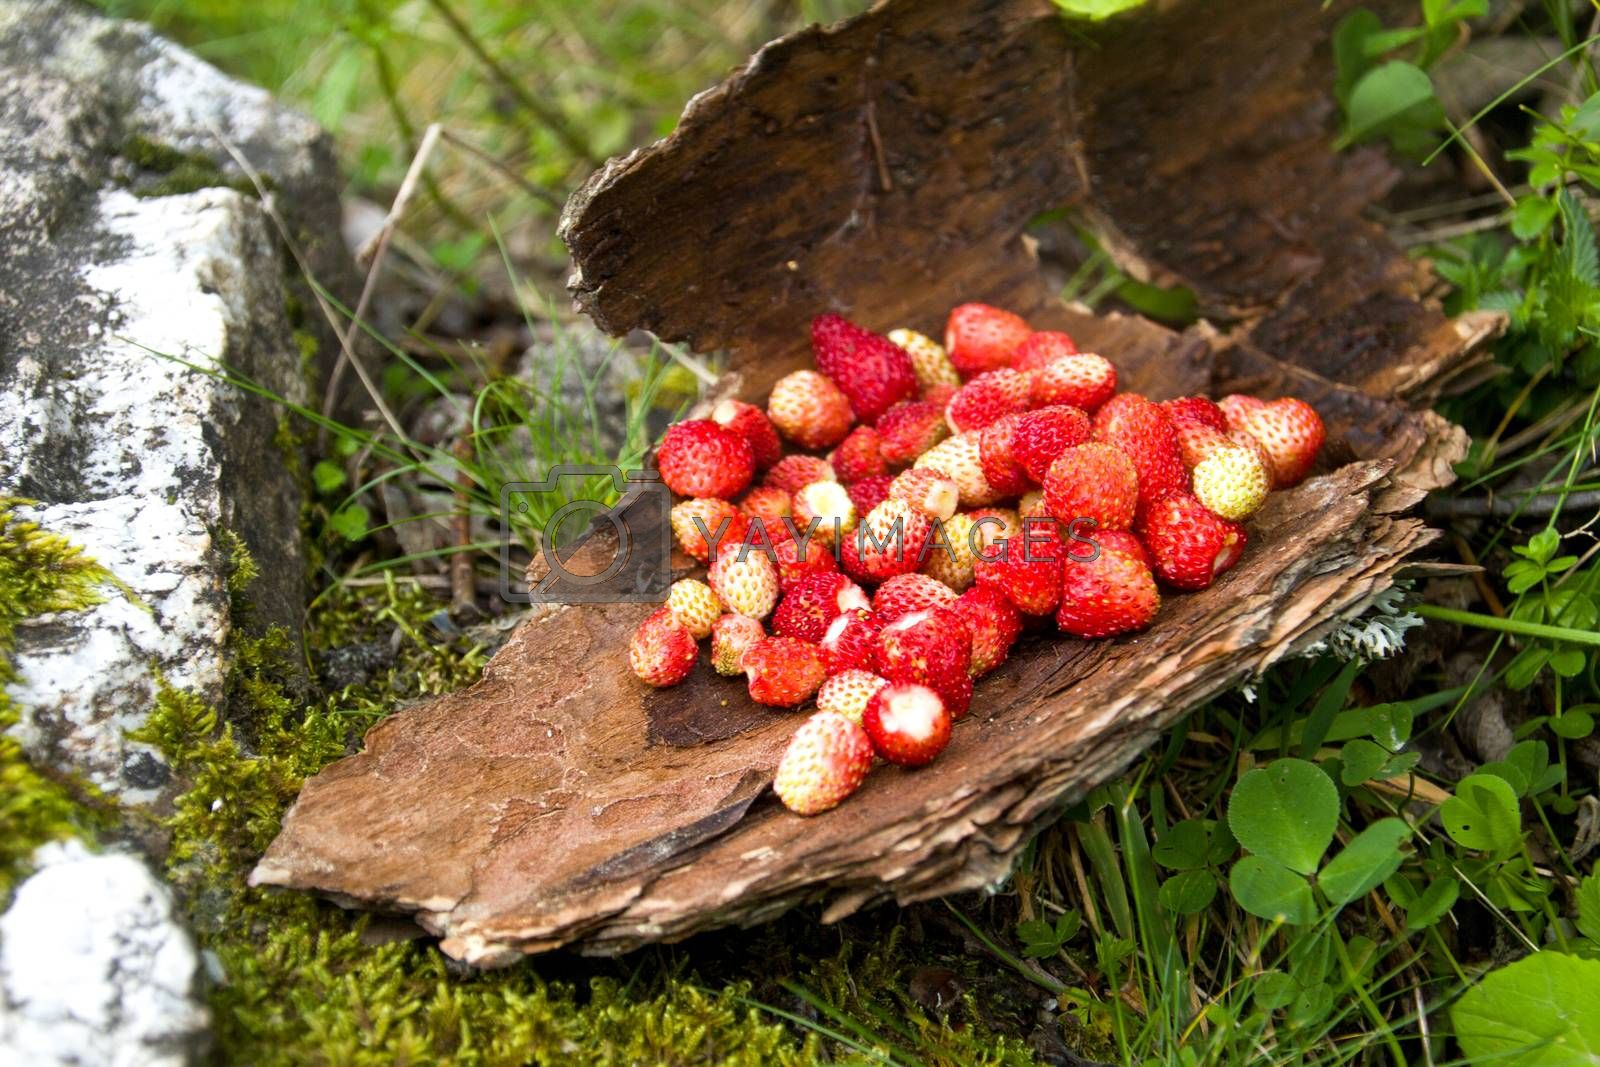 a handfull of wild strawberries placed on a tree crust